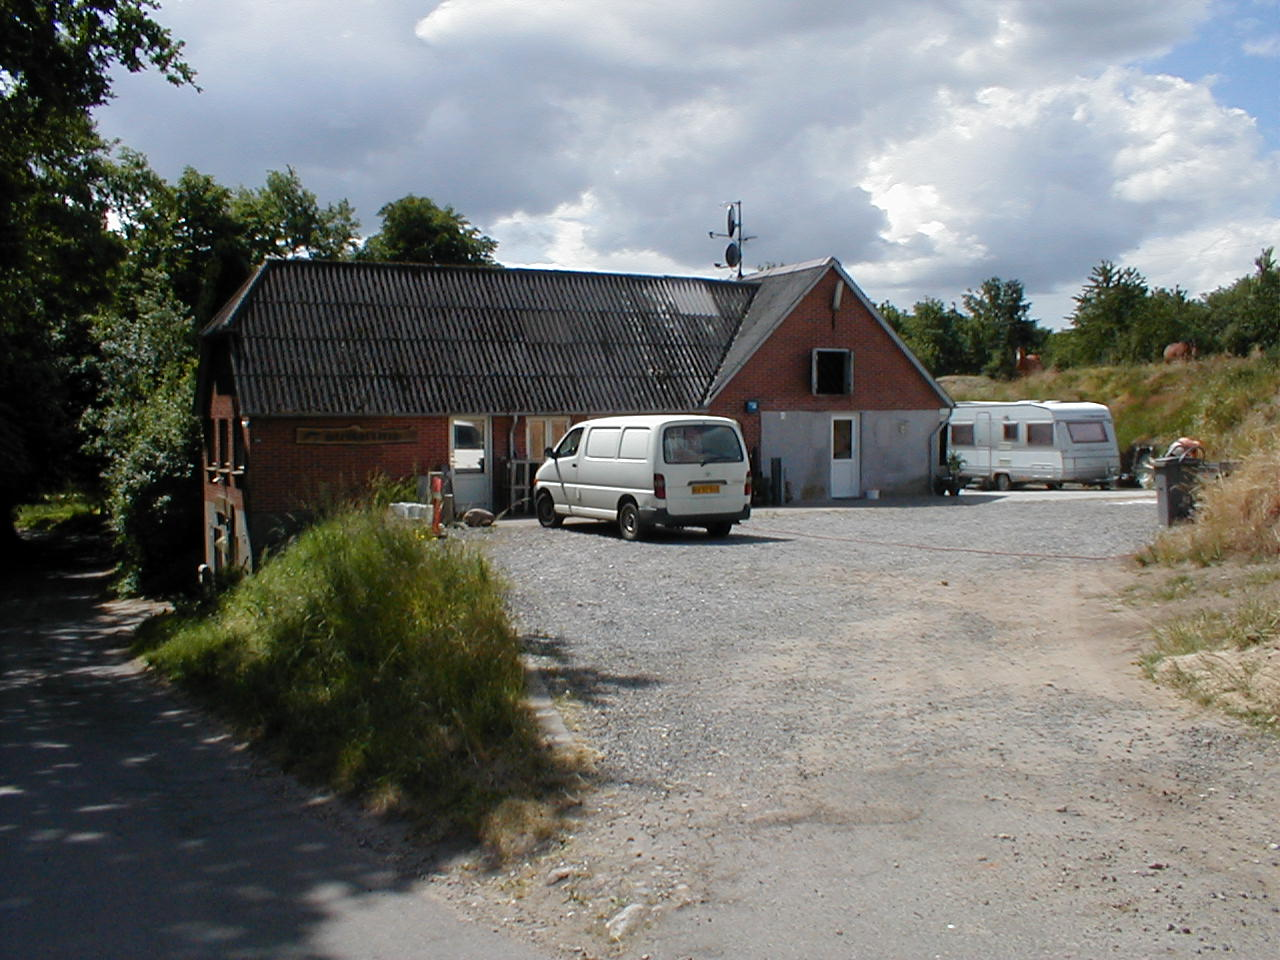 BedAndBreakfast - Surrounding - Parking